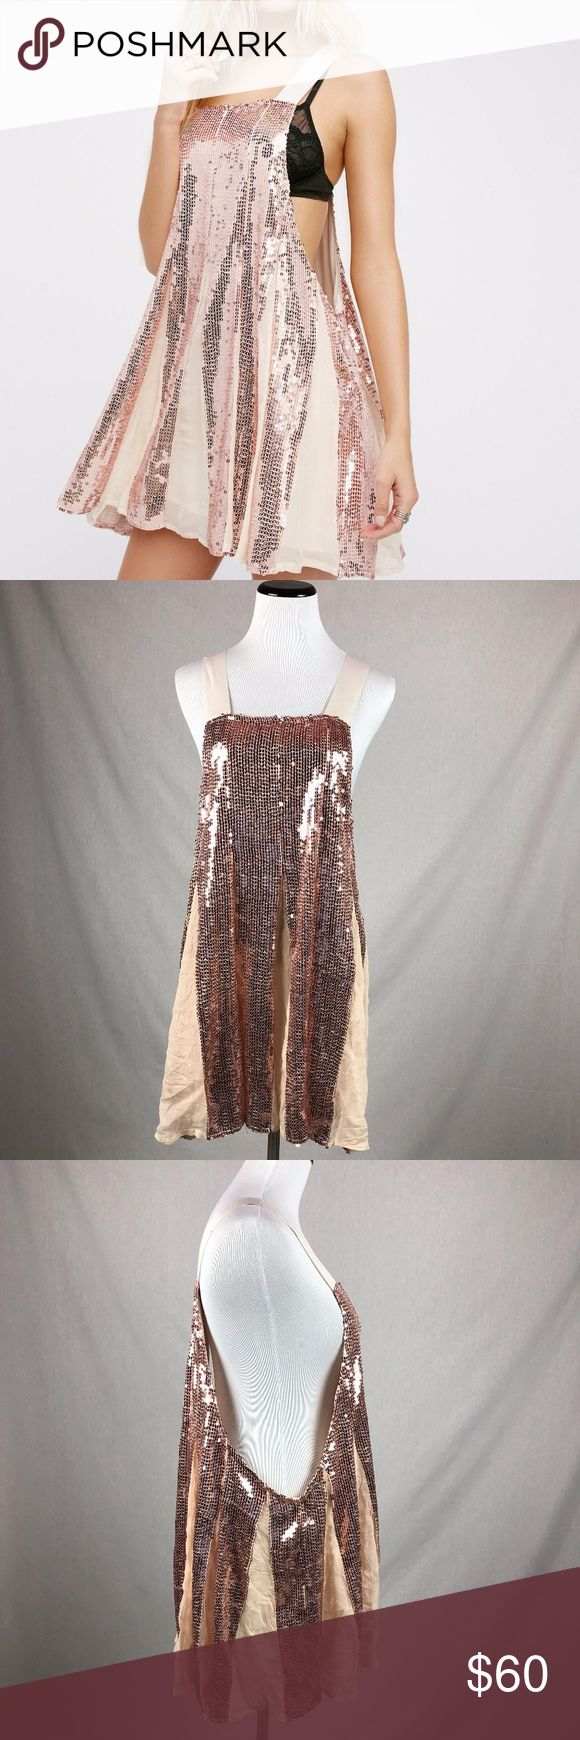 """NEW Free People Shimmering Lines Sequined Dress *NEW WITHOUT TAGS*  Mark on one shoulder strap. tags have been blacklined to prevent store return  Free People Shimmering Lines swing dress in beautiful rose gold. This dress is perfect for a night out or special event!!  Size Small  armpit to armpit-23"""" overall length-32.5""""  I257 Free People Dresses Mini"""